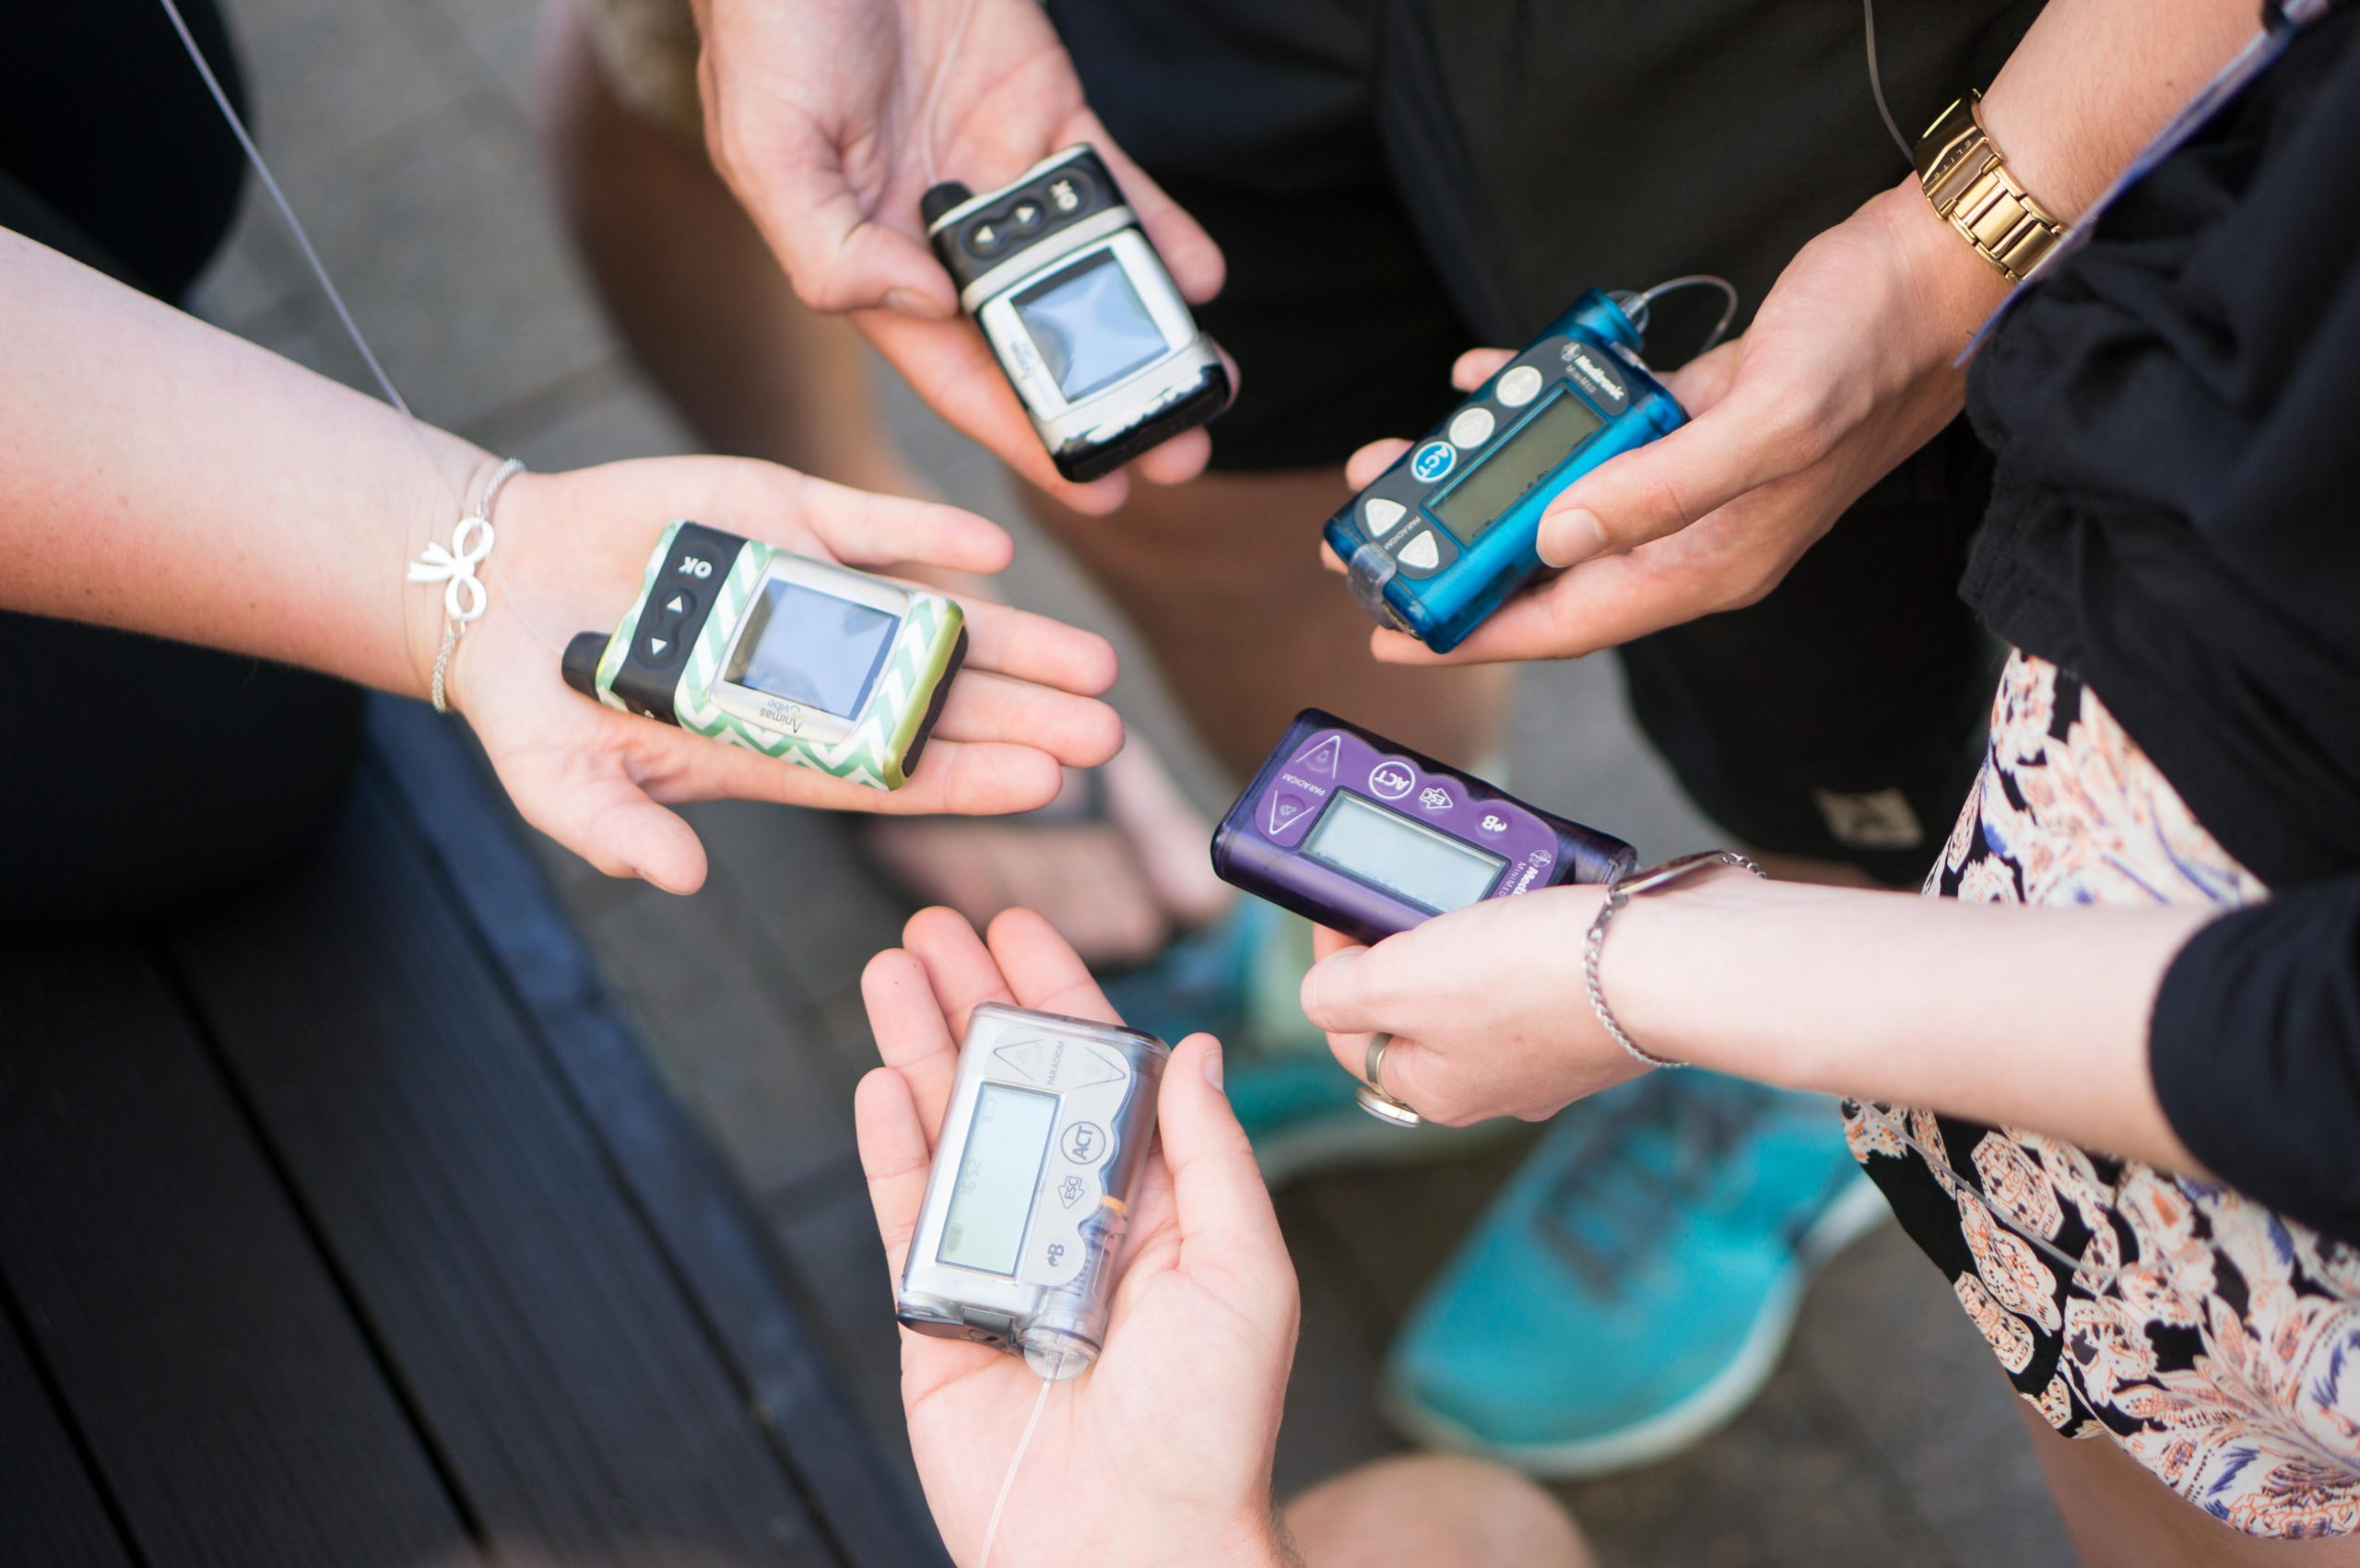 group of teenagers holding insulin pumps